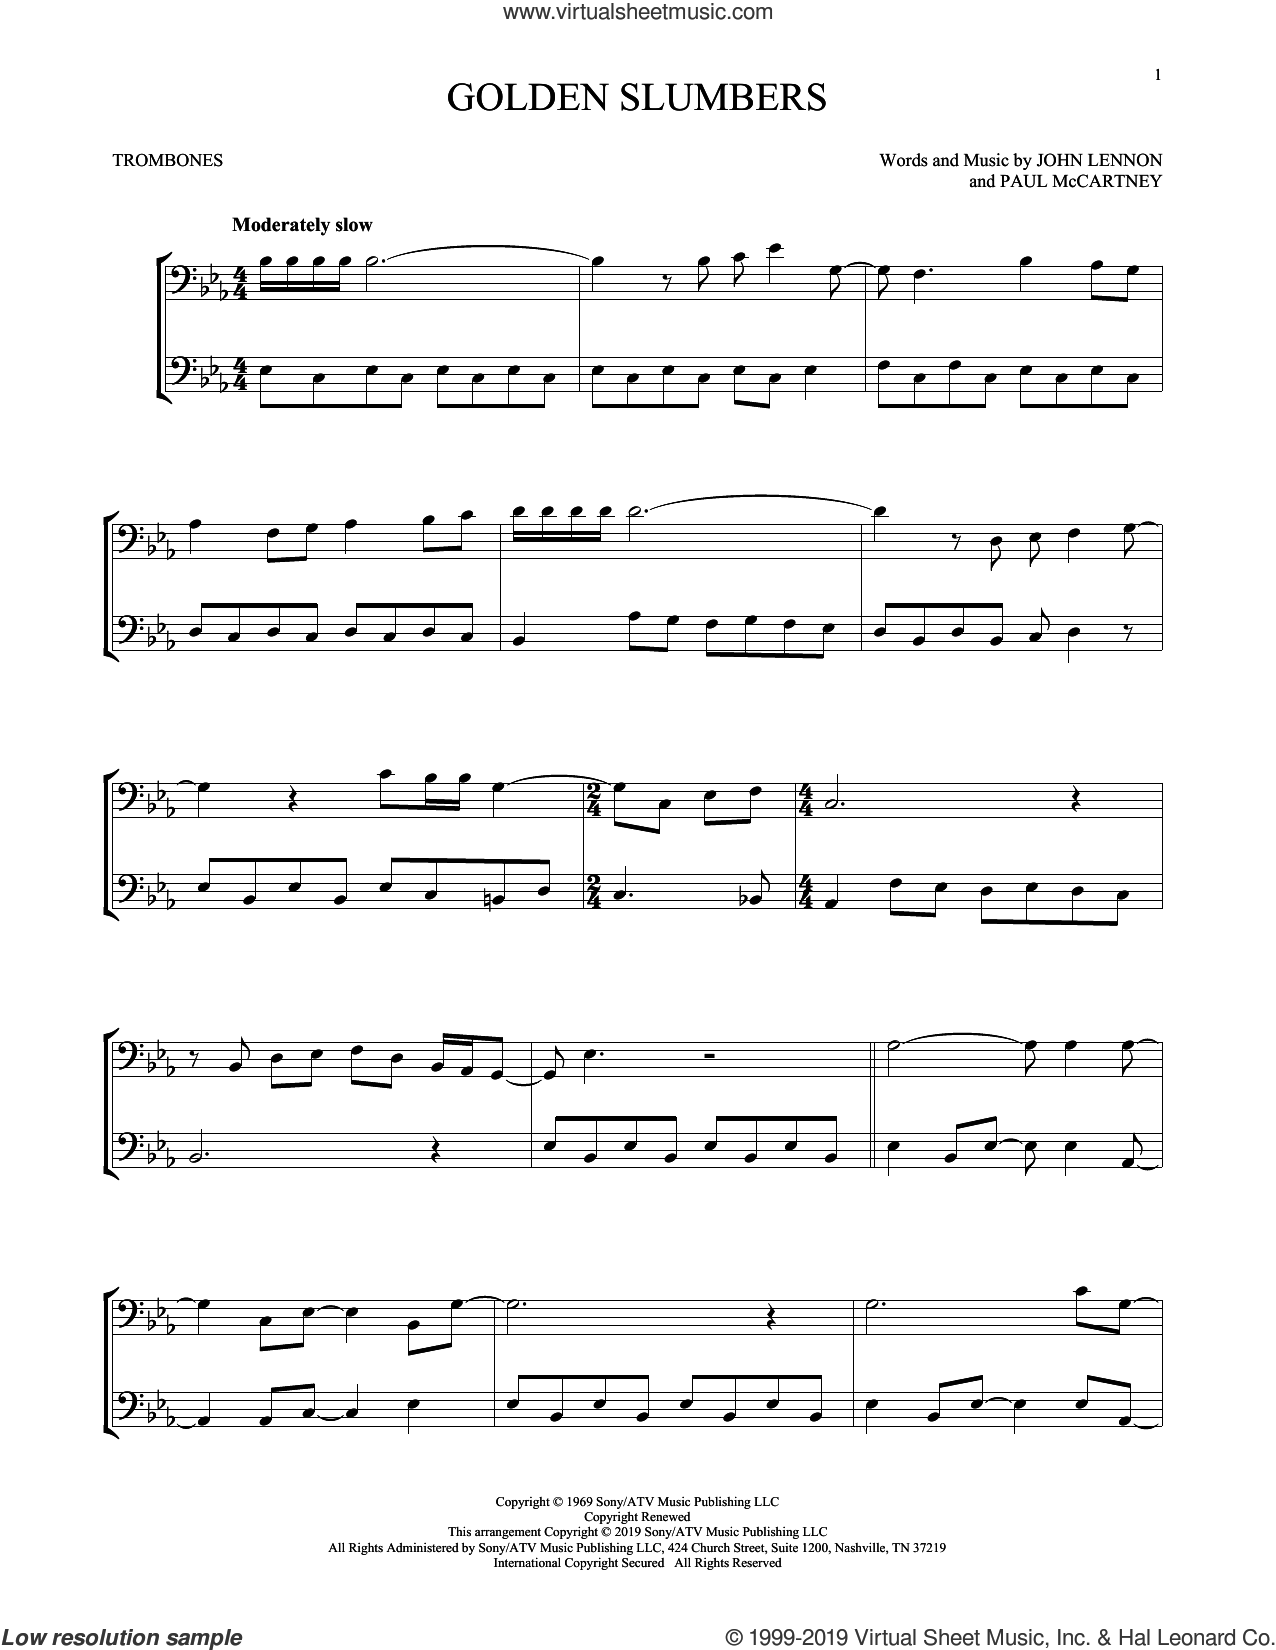 Golden Slumbers sheet music for two trombones (duet, duets) by The Beatles, John Lennon and Paul McCartney, intermediate skill level